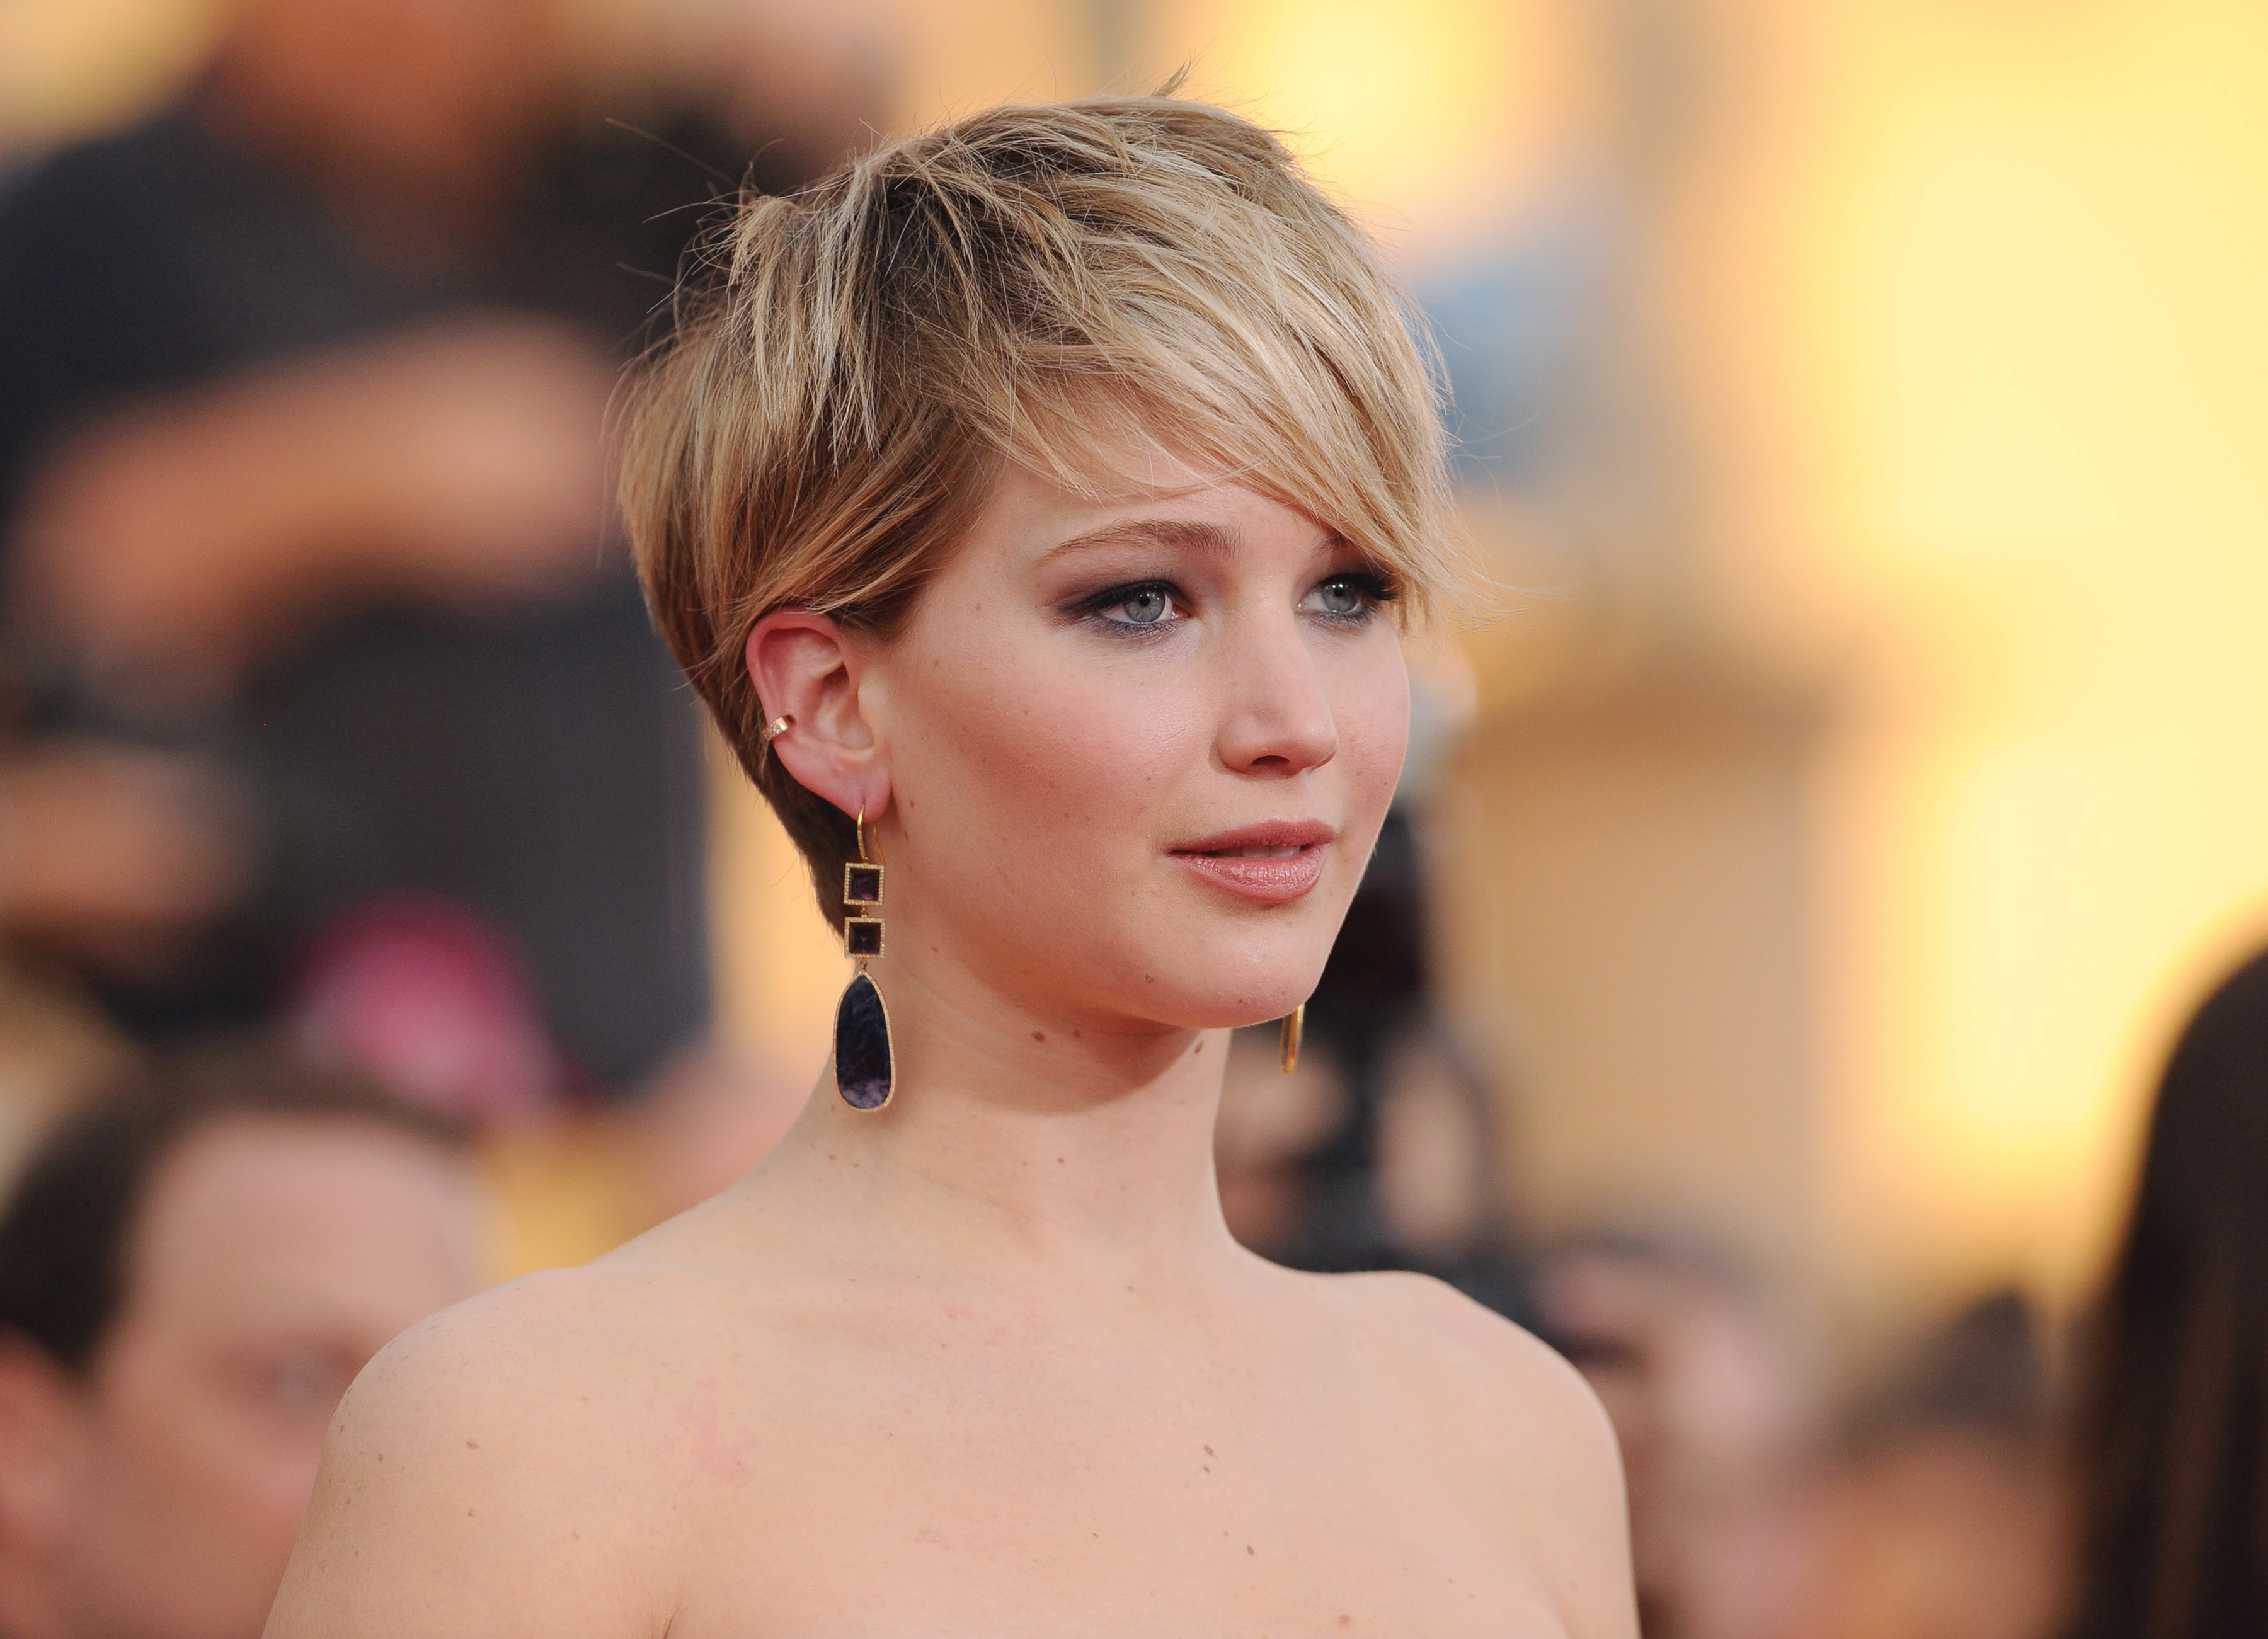 Short Pixie Haircuts For Thick Hair – Short And Cuts Hairstyles Throughout Low Maintenance Short Haircuts For Thick Hair (View 5 of 25)